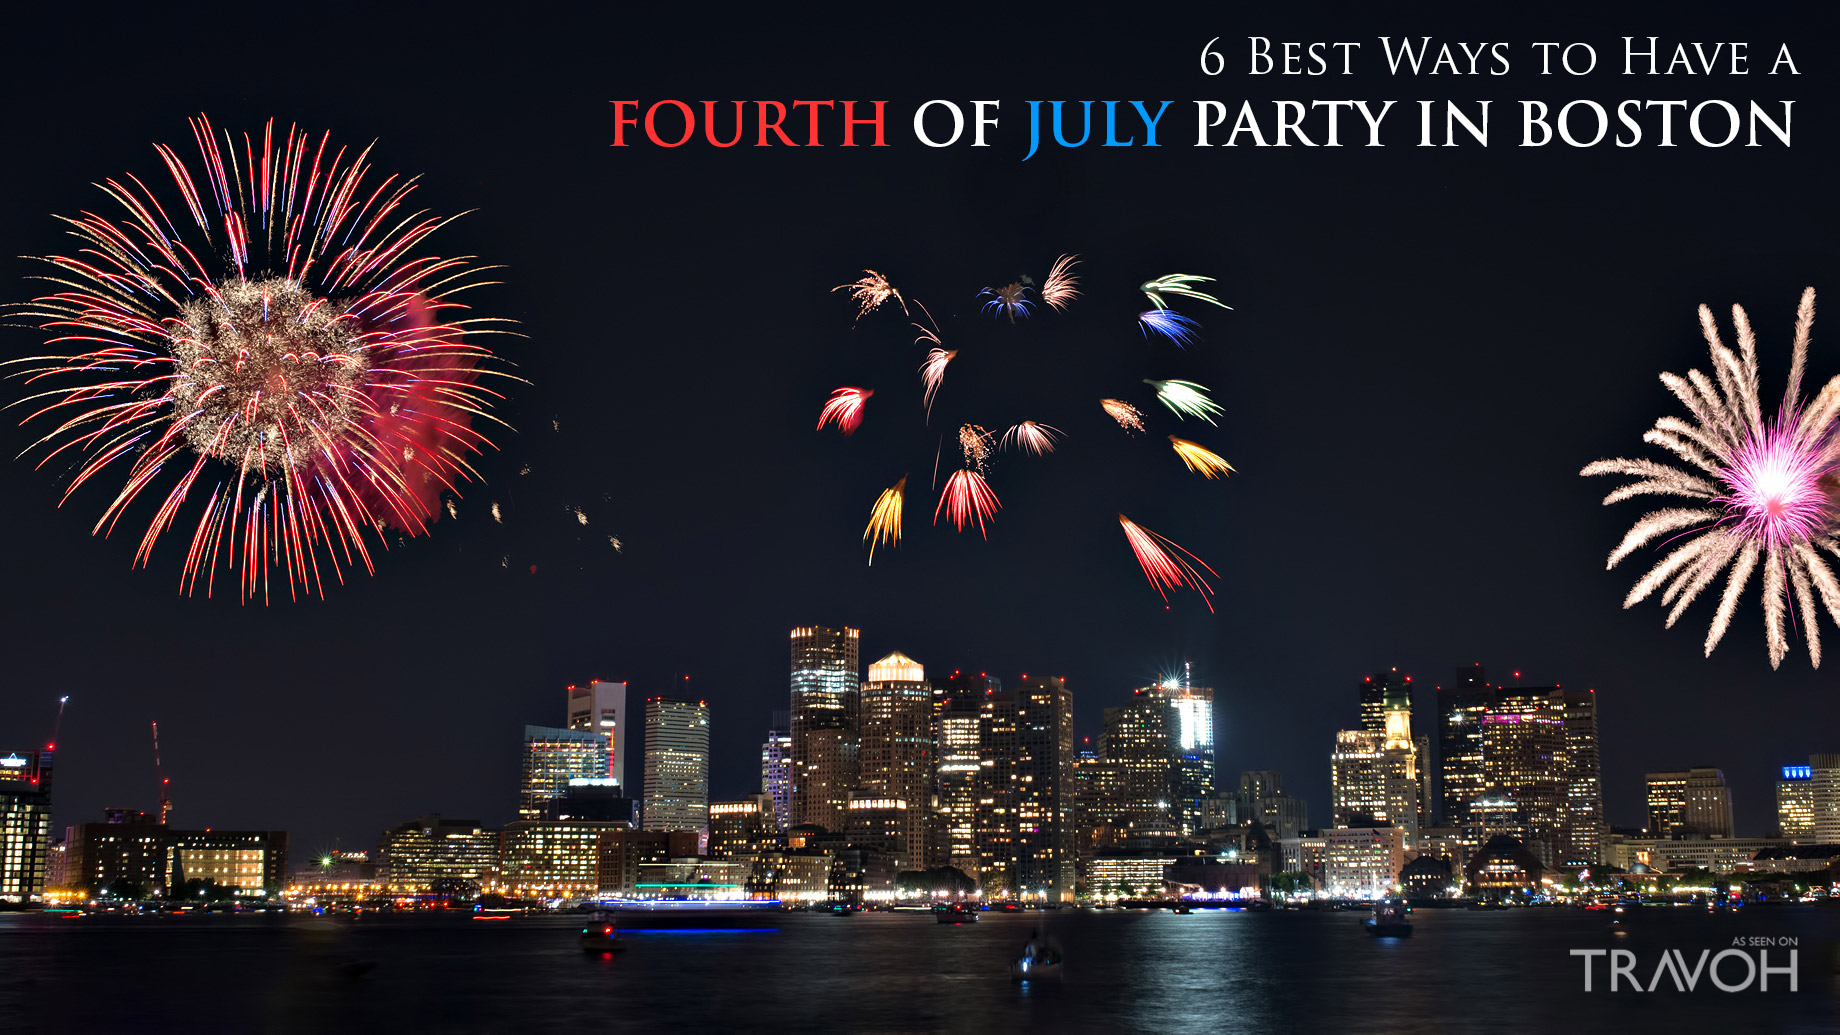 6 Best Ways to Have a Fourth of July Party in Boston